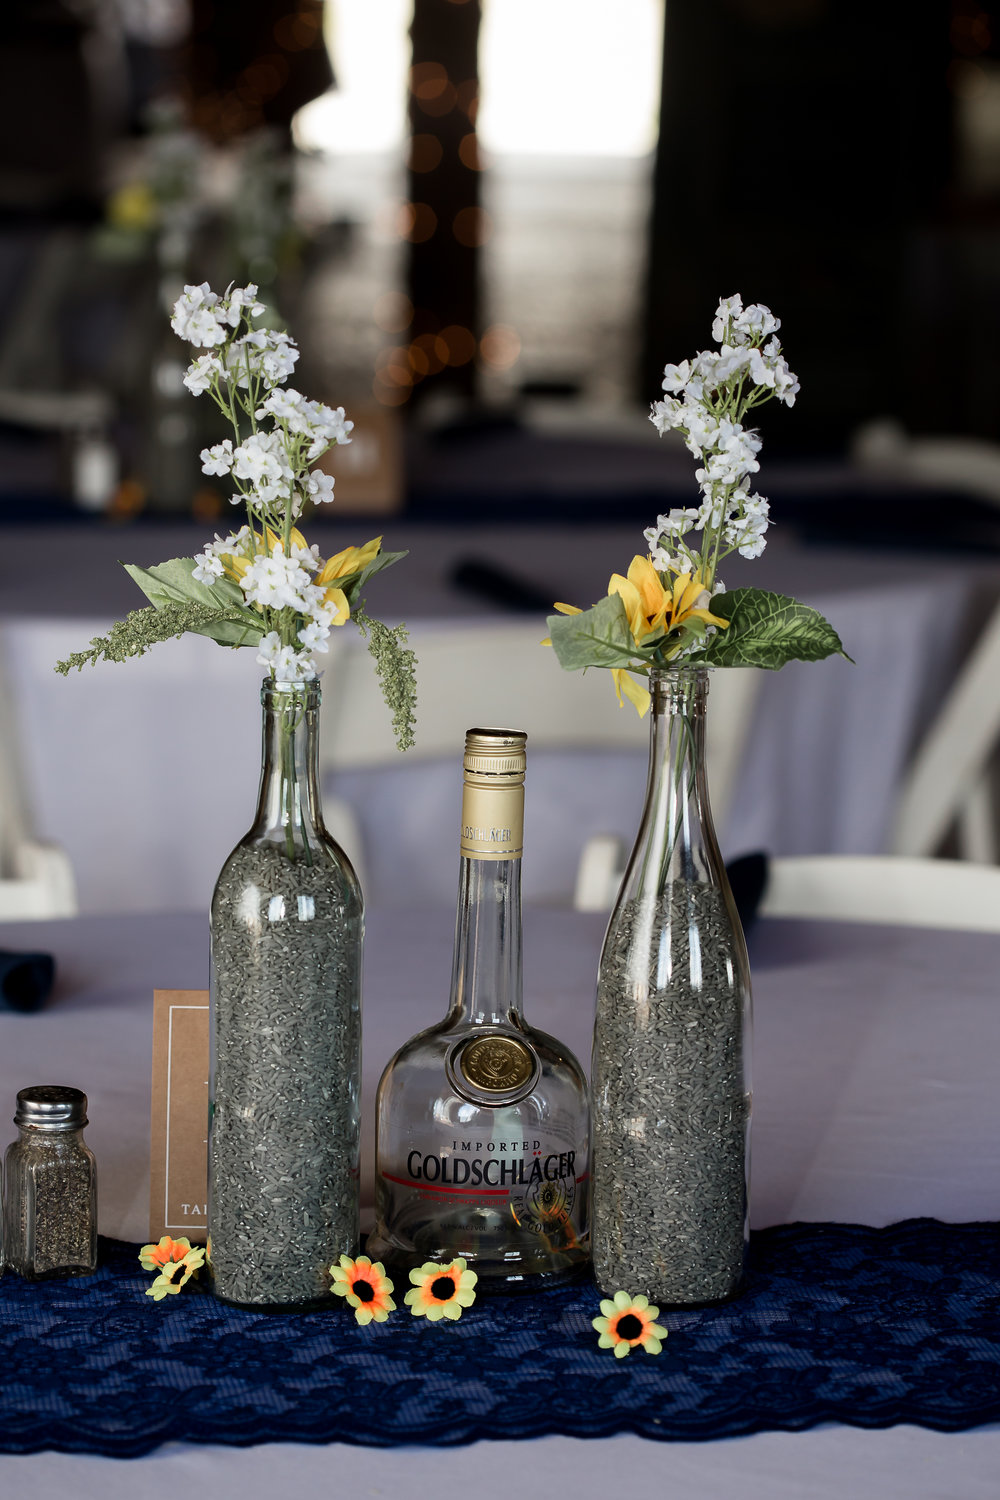 Gandjos_Tinko_BackSeatPhotography_backseatphoto67.JPG